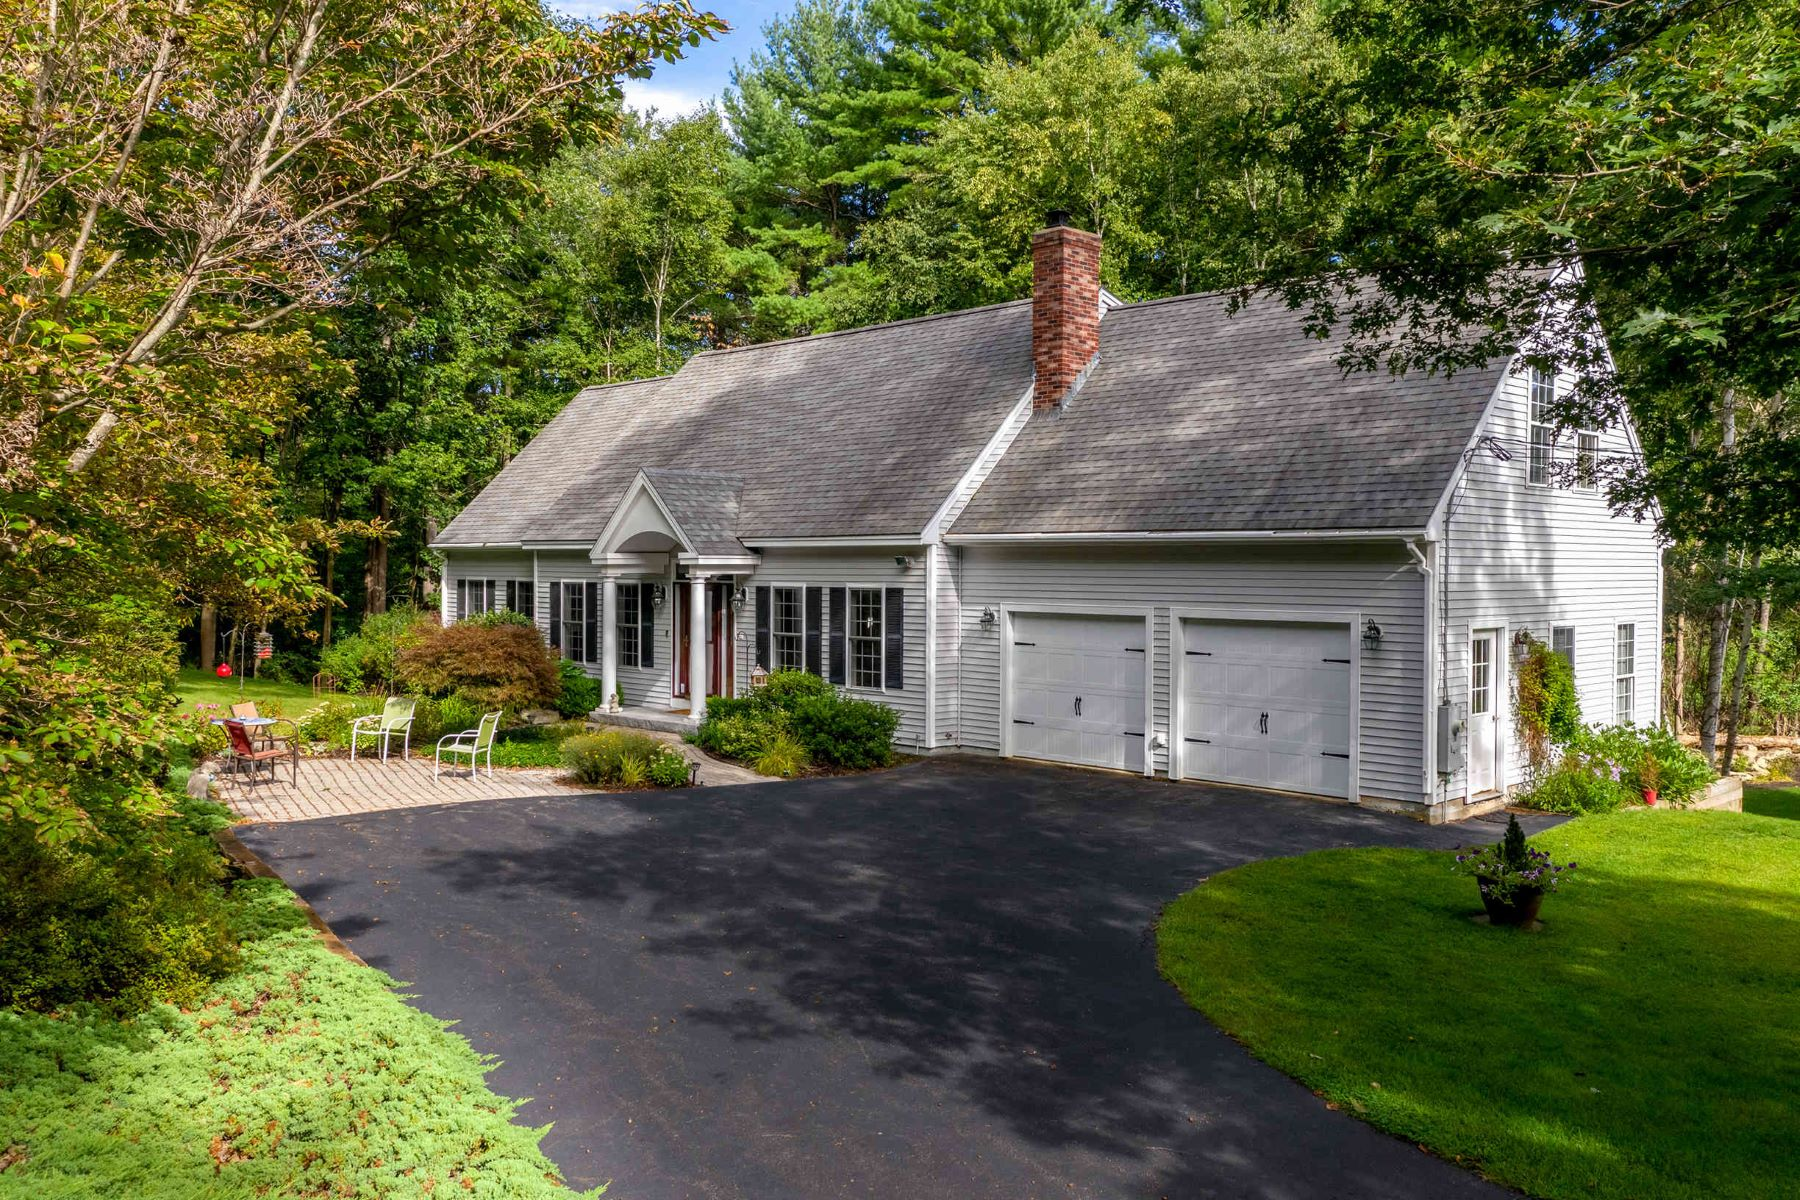 Single Family Homes for Active at Beautiful Cape on a Private Cul-de-sac in Kittery Point 14 Lynch Lane Kittery, Maine 03905 United States